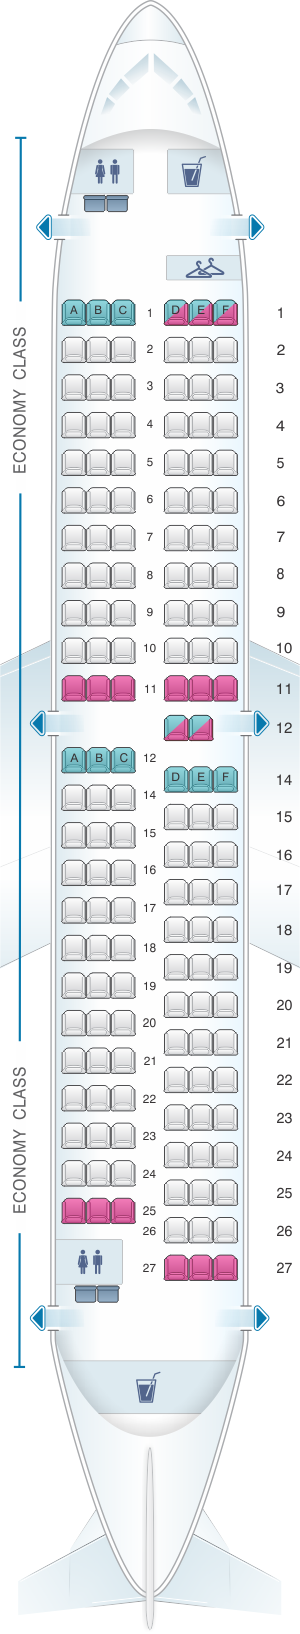 Seat map for AnadoluJet Boeing B737 700